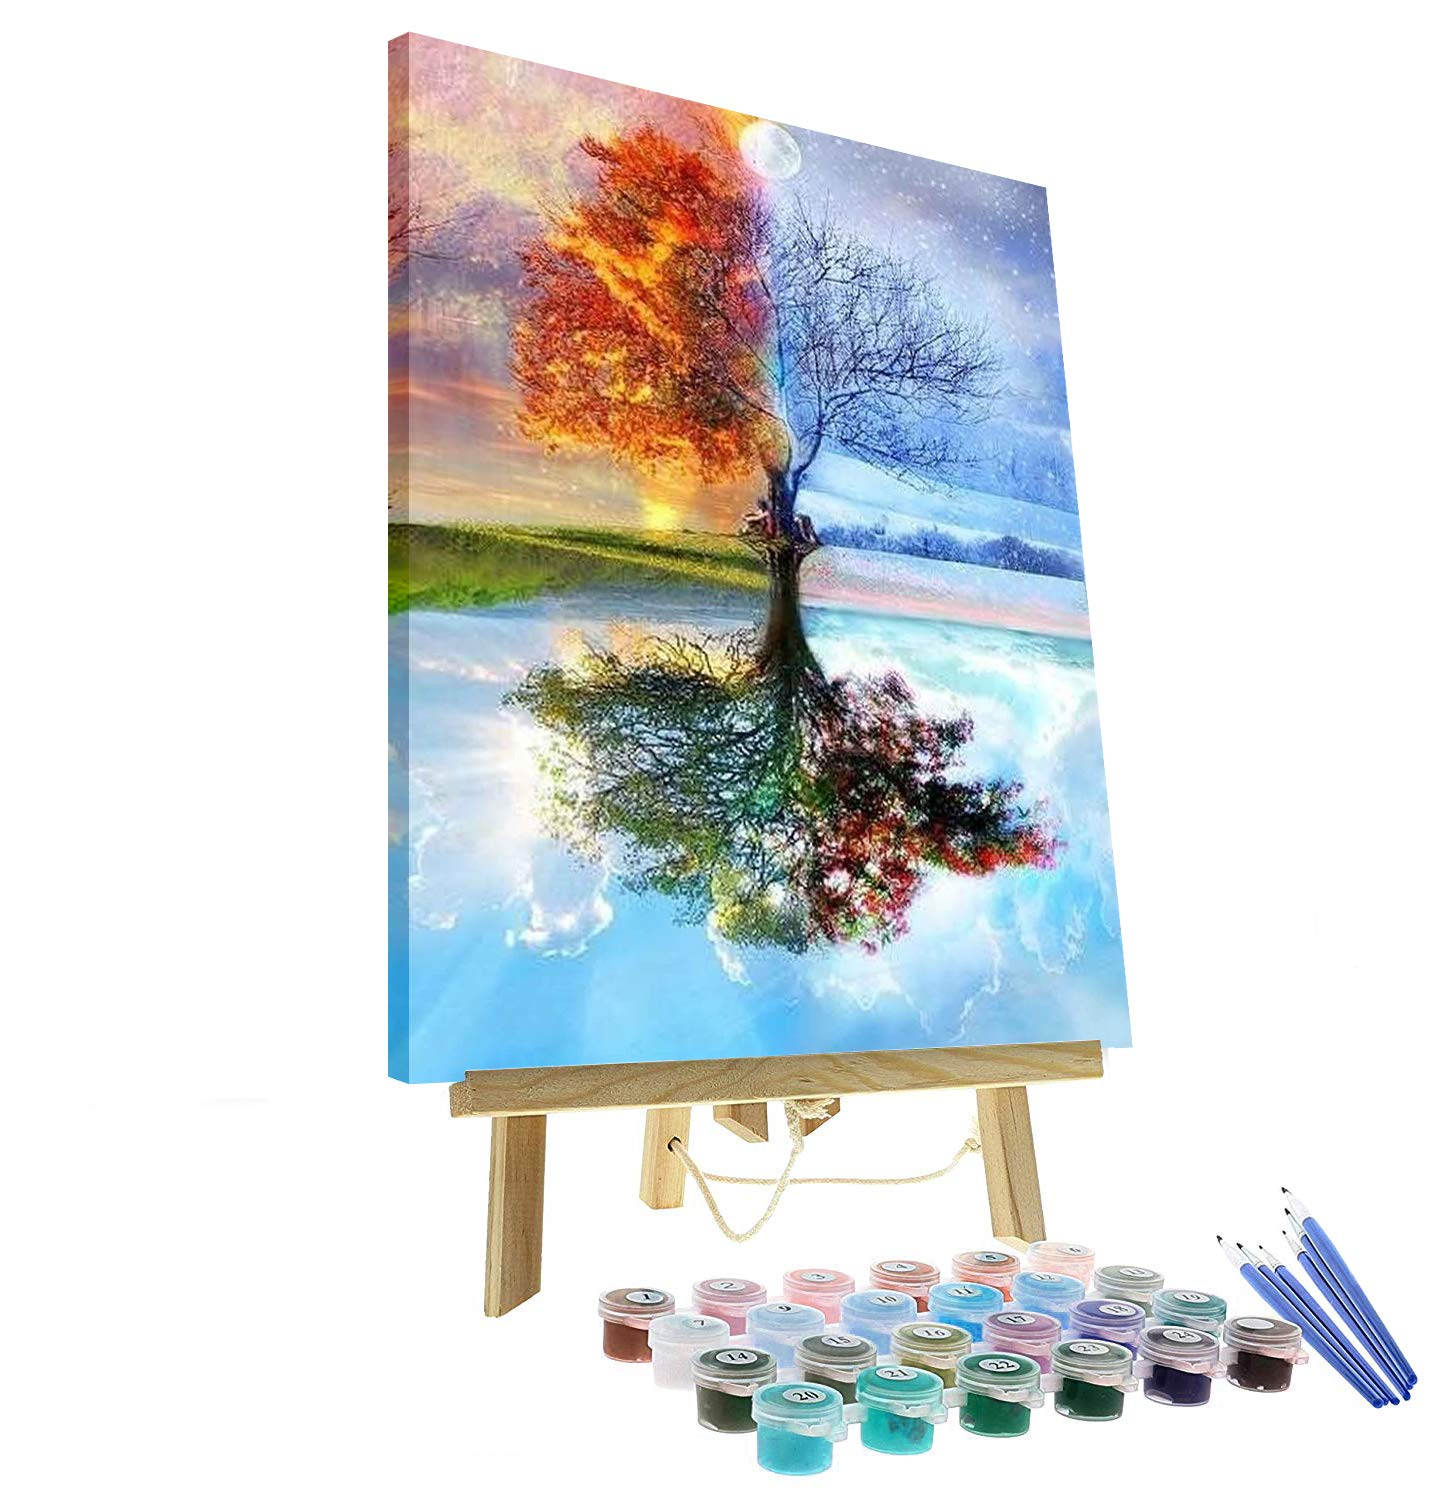 DIY Oil Painting Paint by Number Kit for Adults Kids Beginner - Four Season Tree of Life 16''x20'' with Wooden Frame and Easel by SROOD